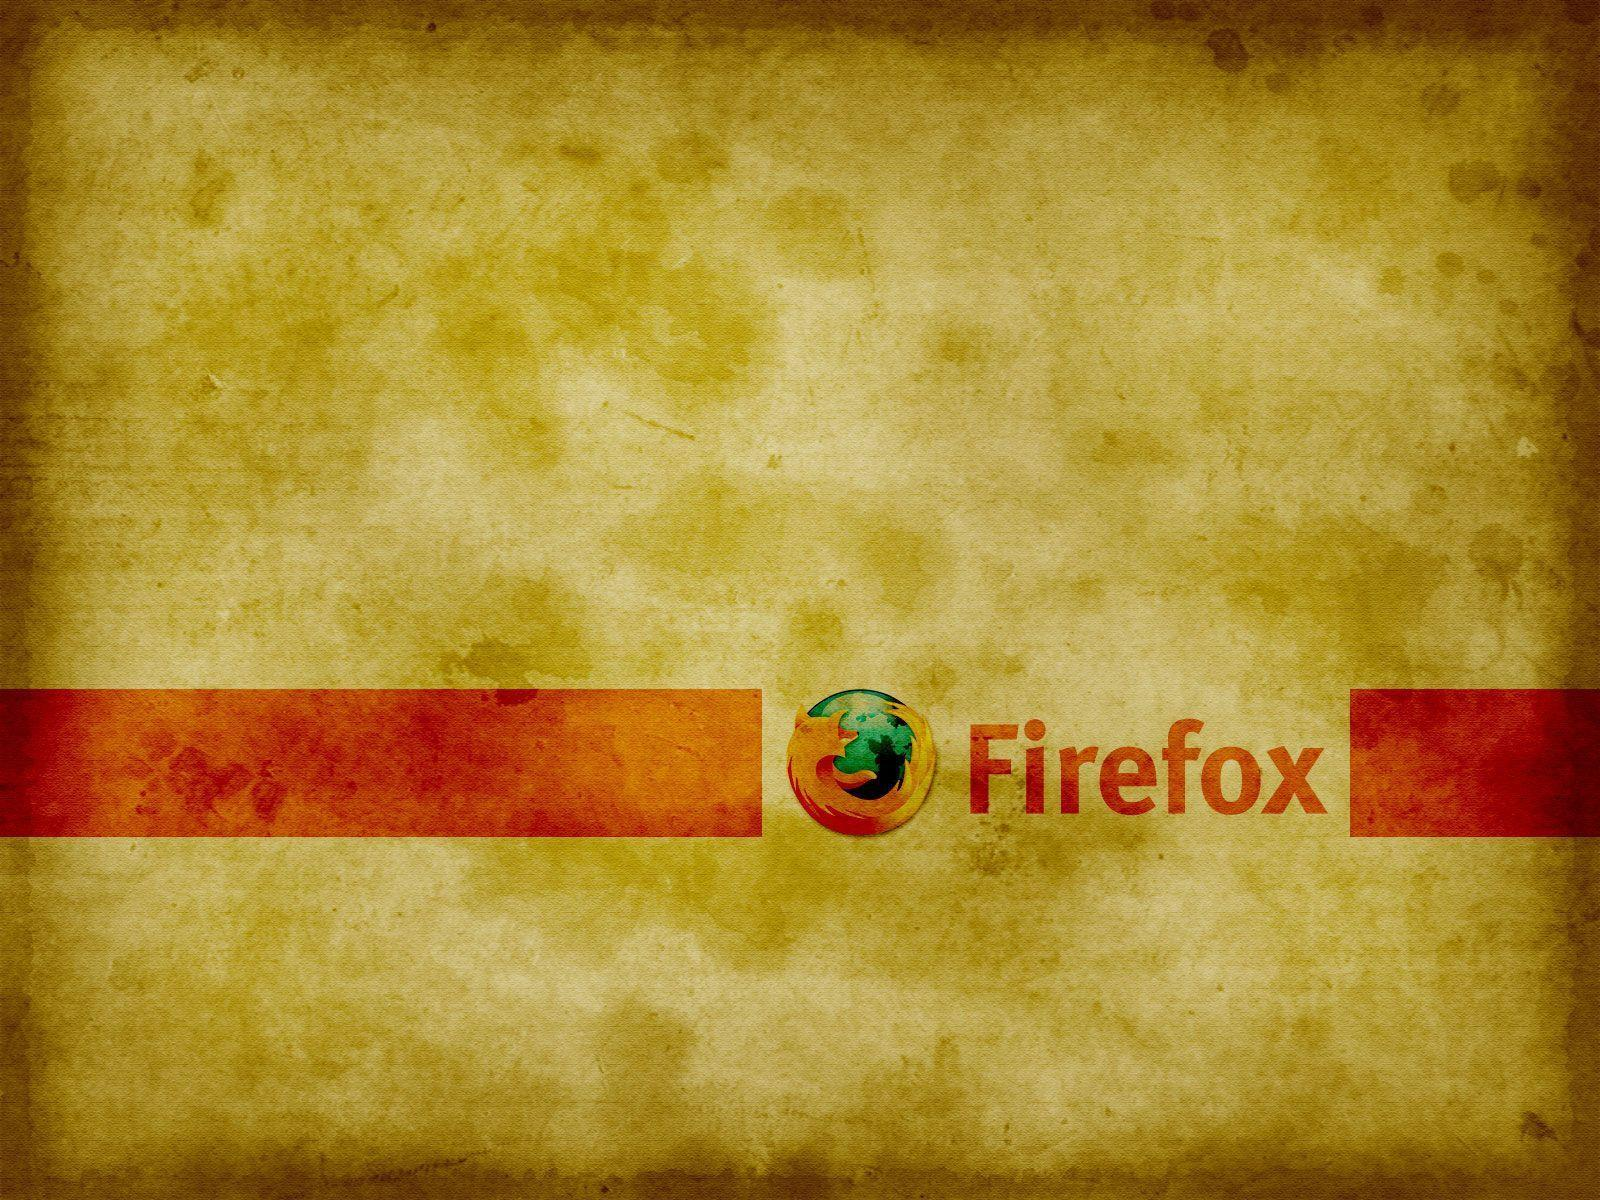 Firefox Background Themes